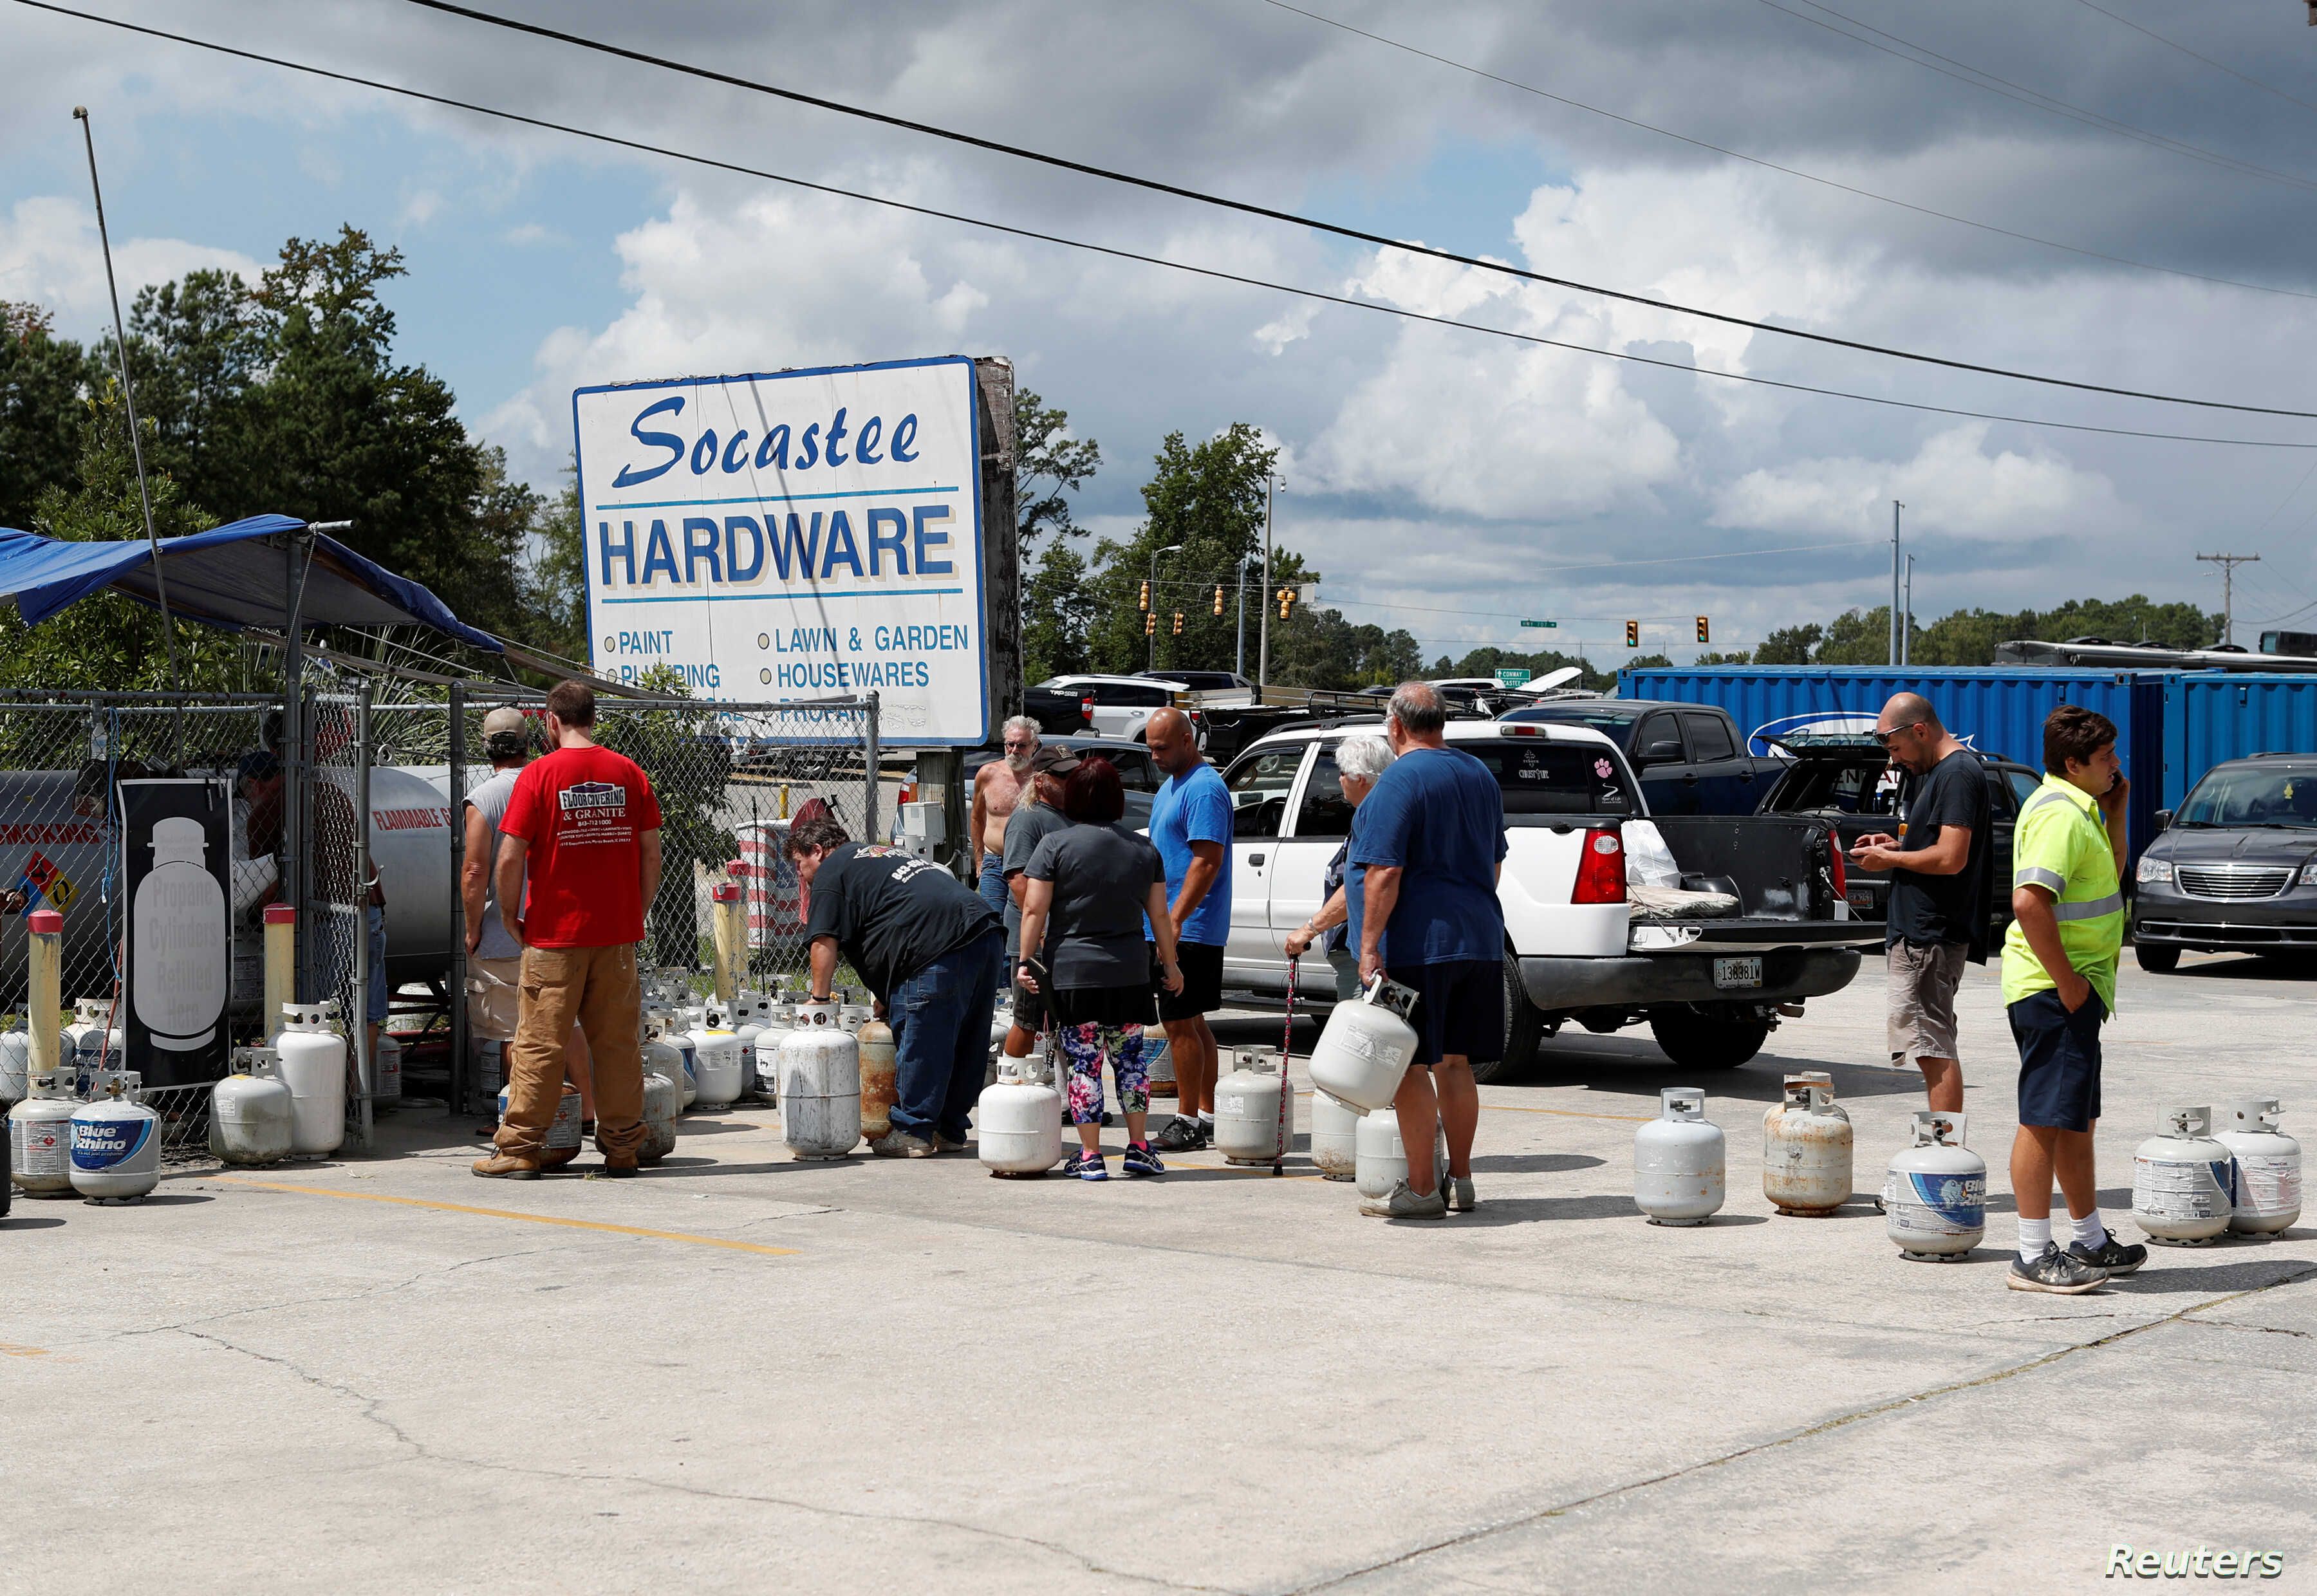 Customers line up to buy propane at Socastee Hardware store, ahead of the arrival of Hurricane Florence in Myrtle Beach, South Carolina, Sept. 10, 2018.